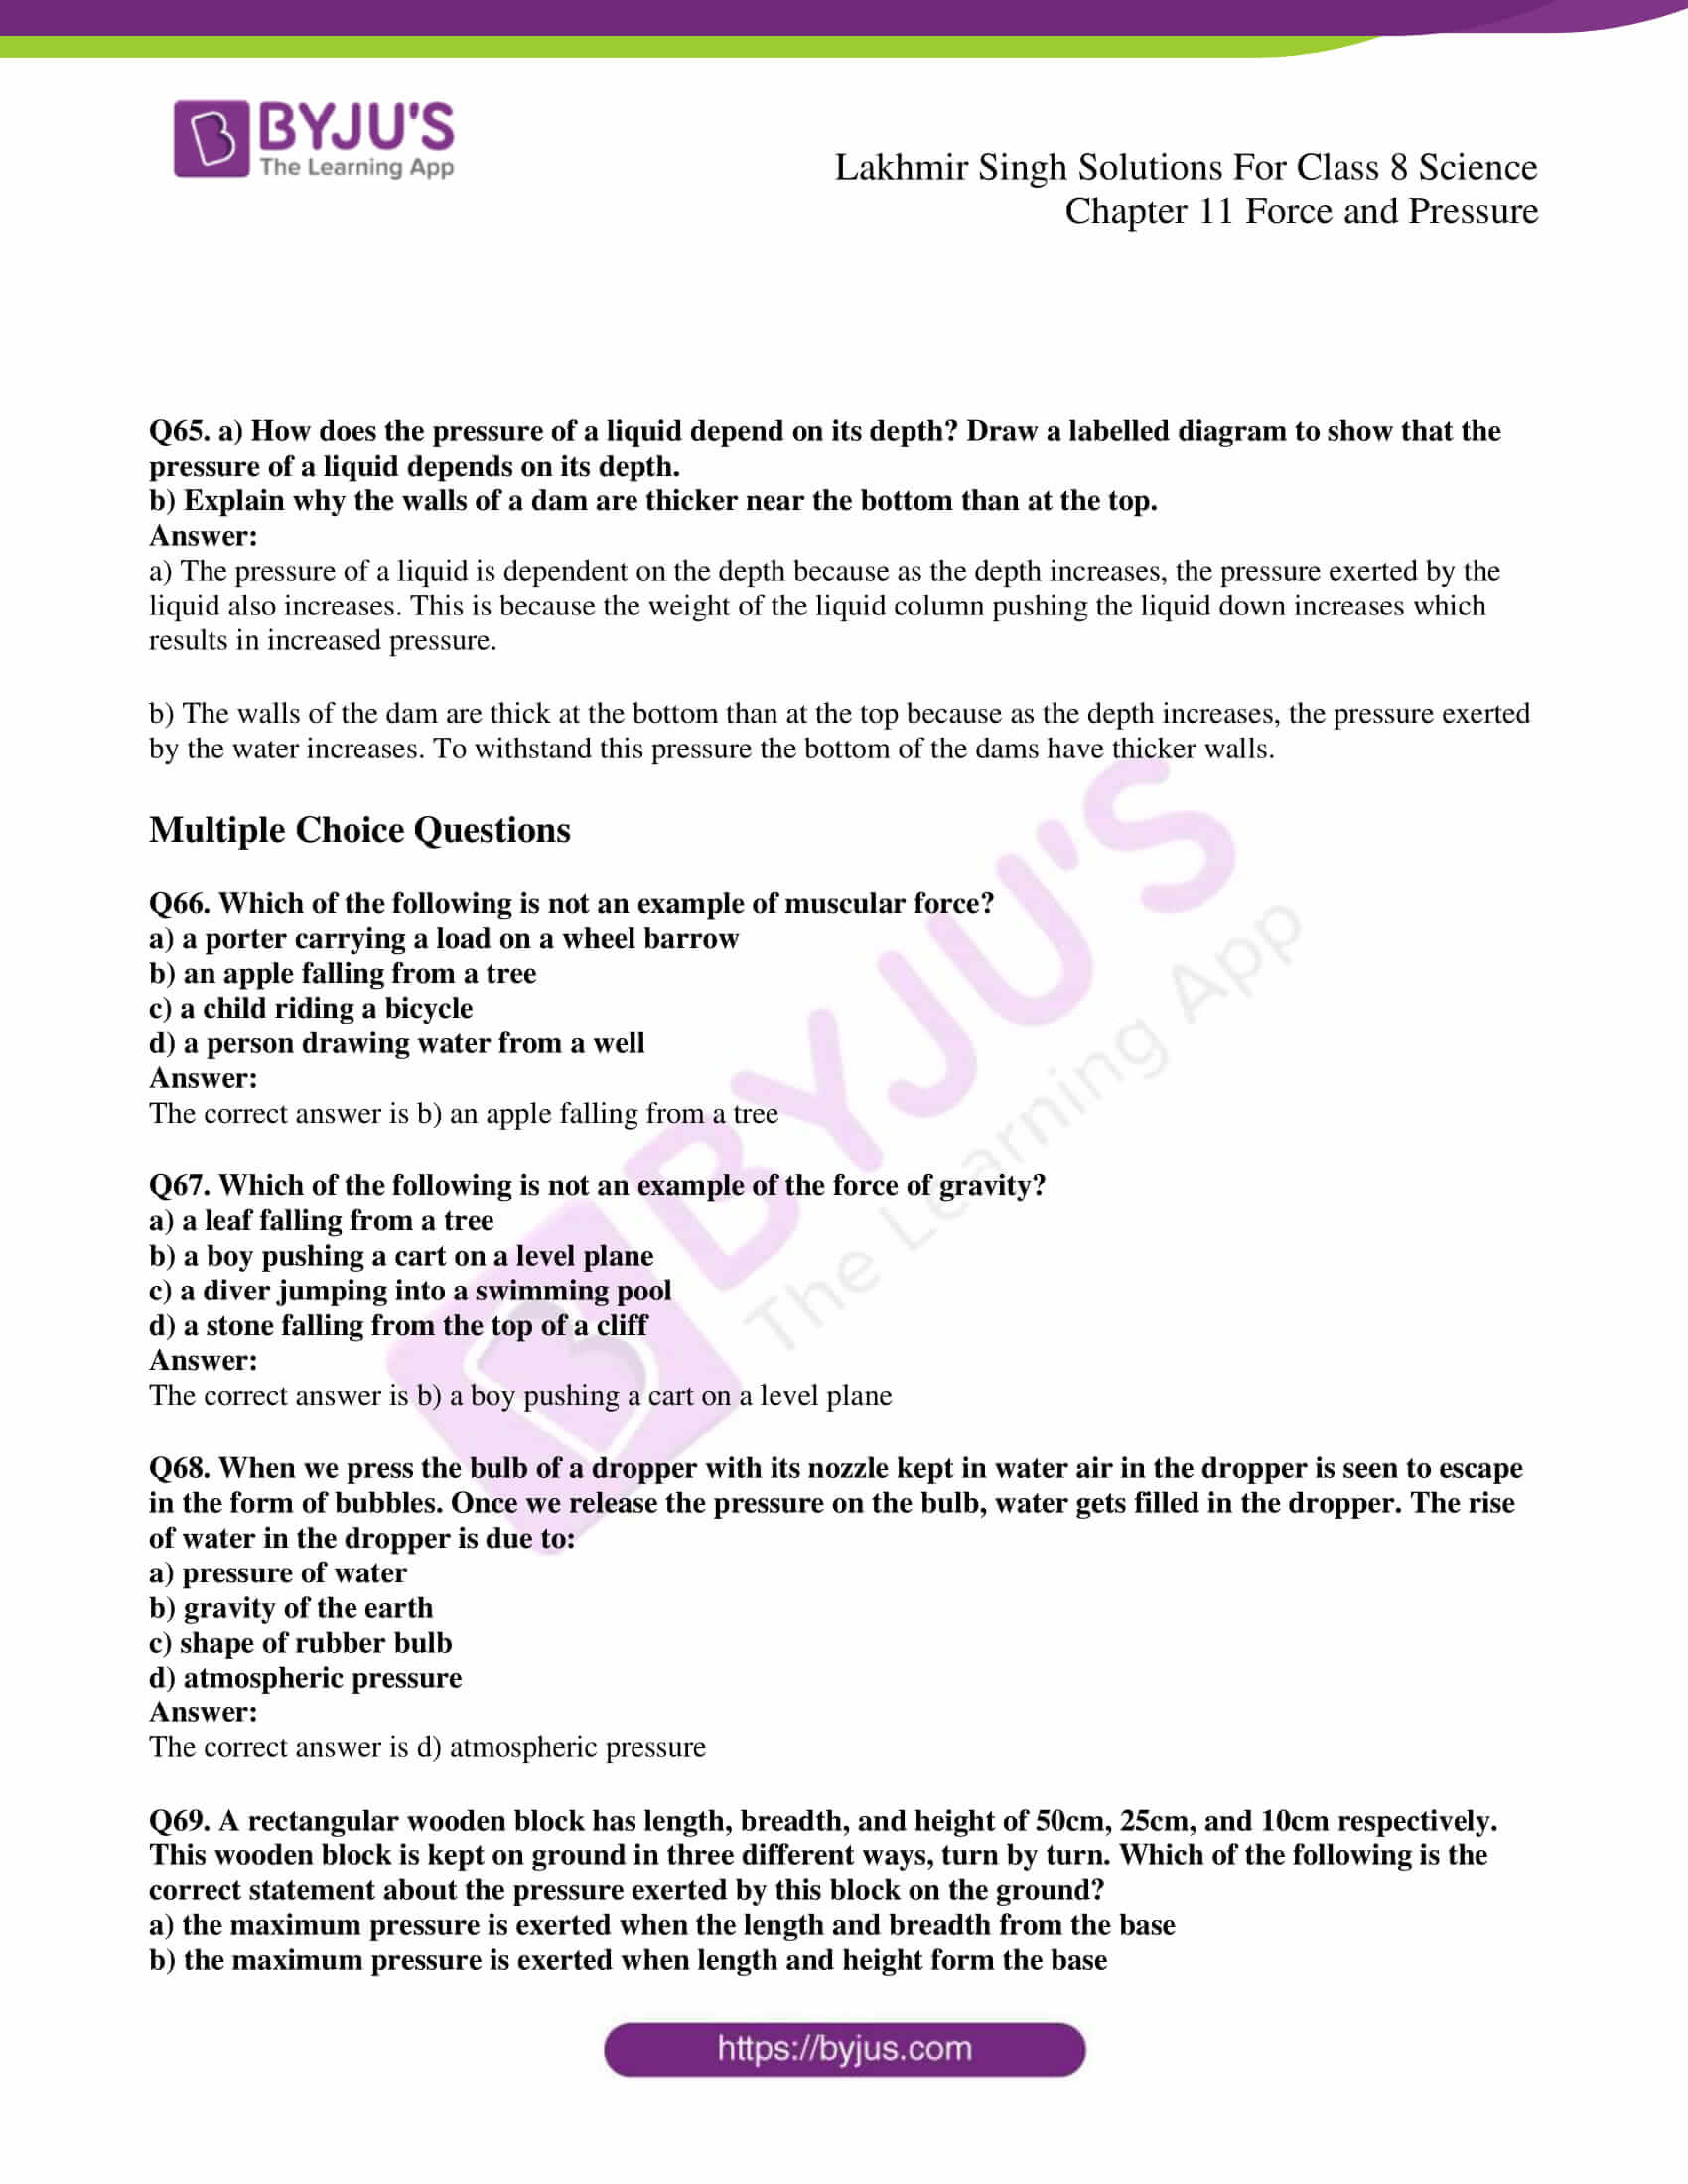 lakhmir singh solutions for class 8 science chapter 11 10